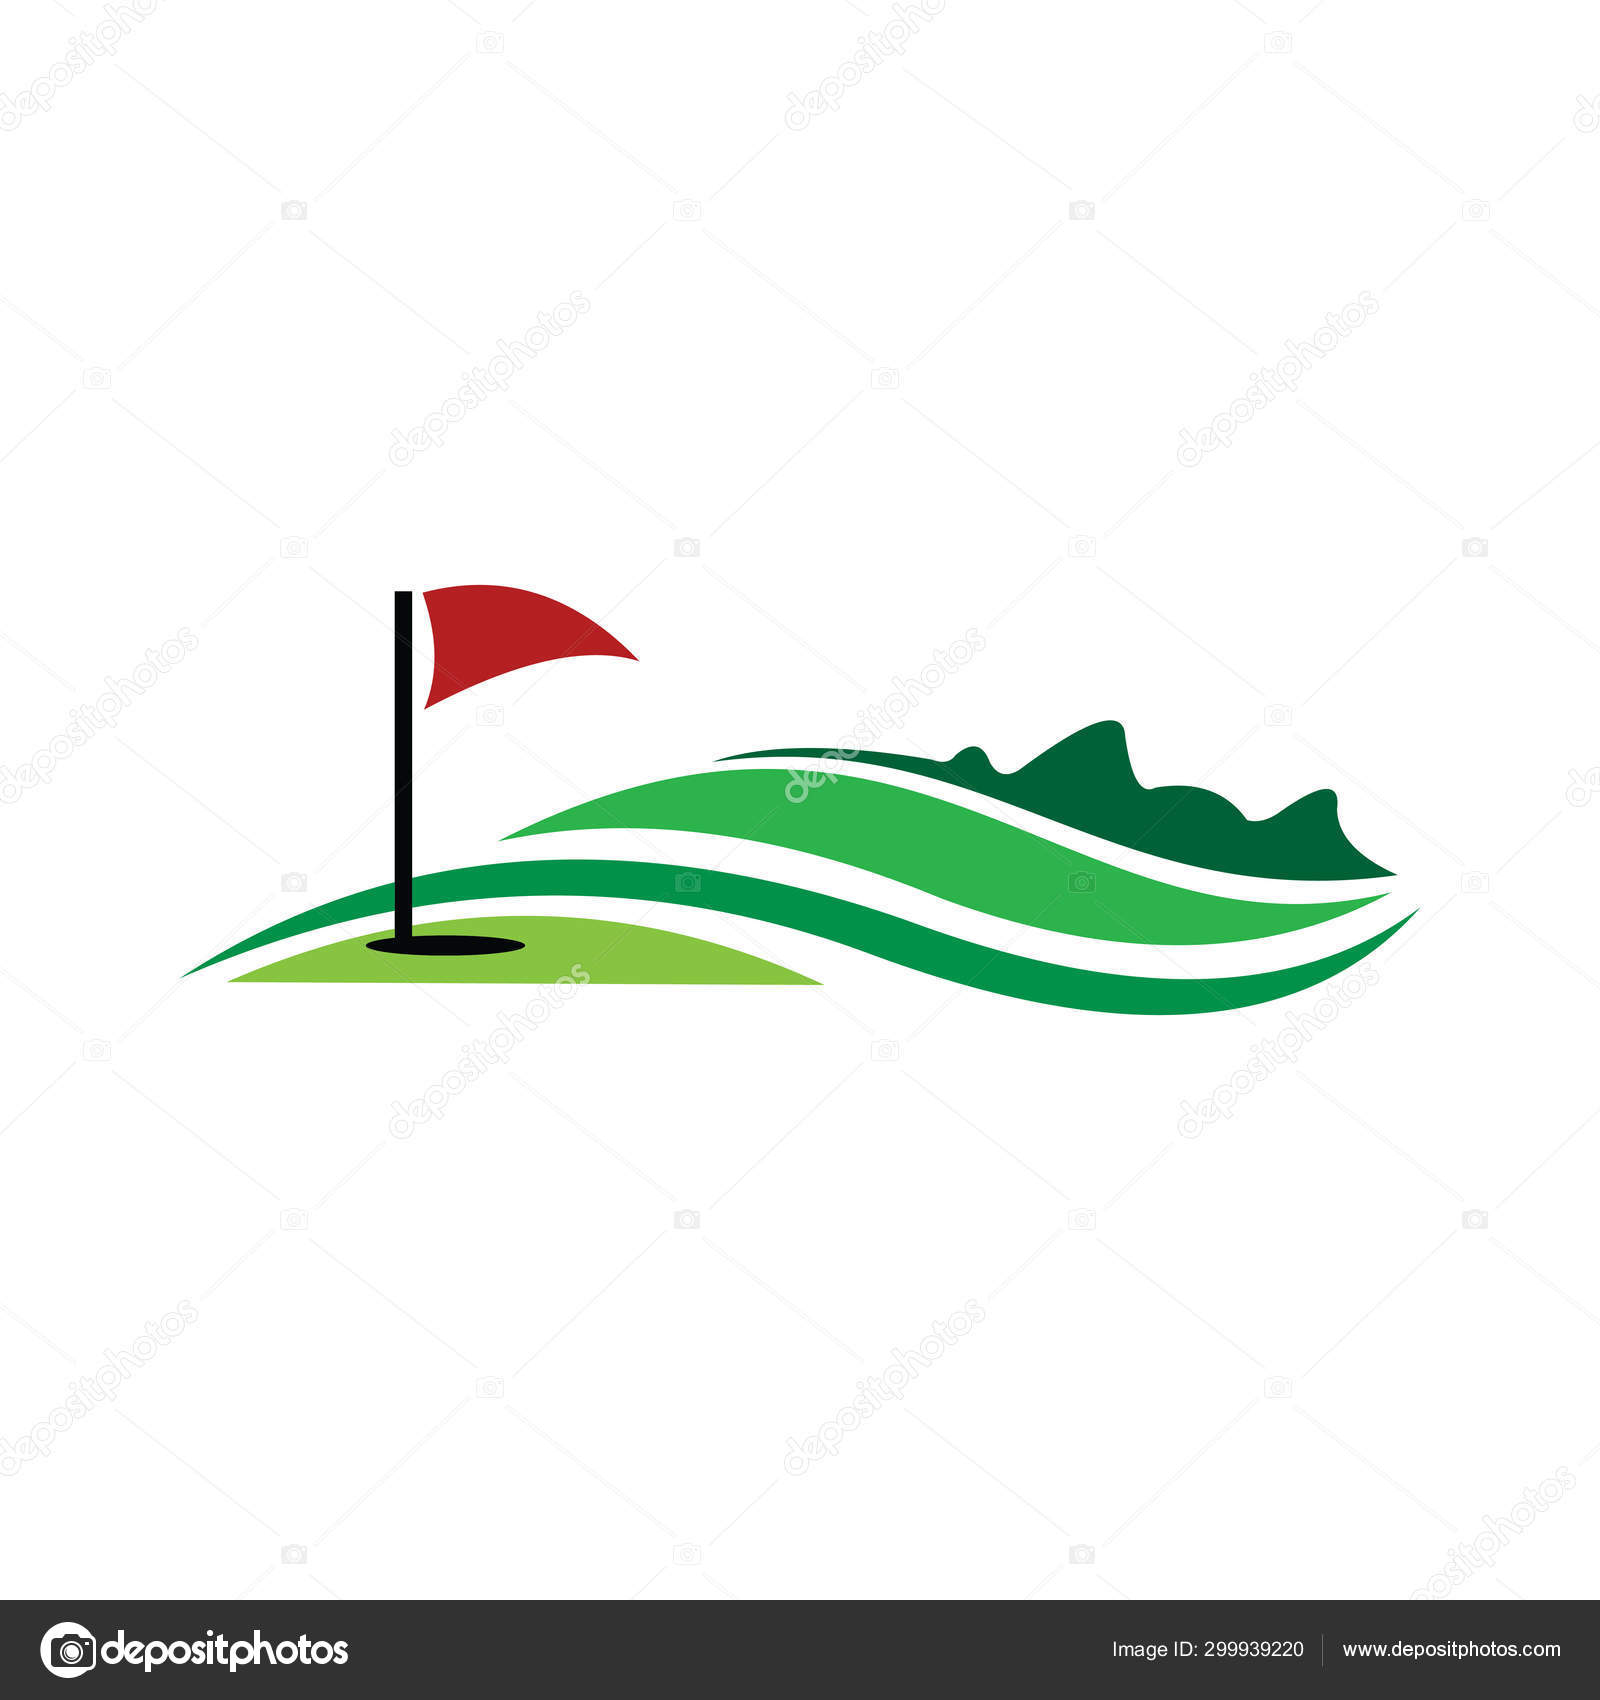 Golf logo  graphic design template vector illustration